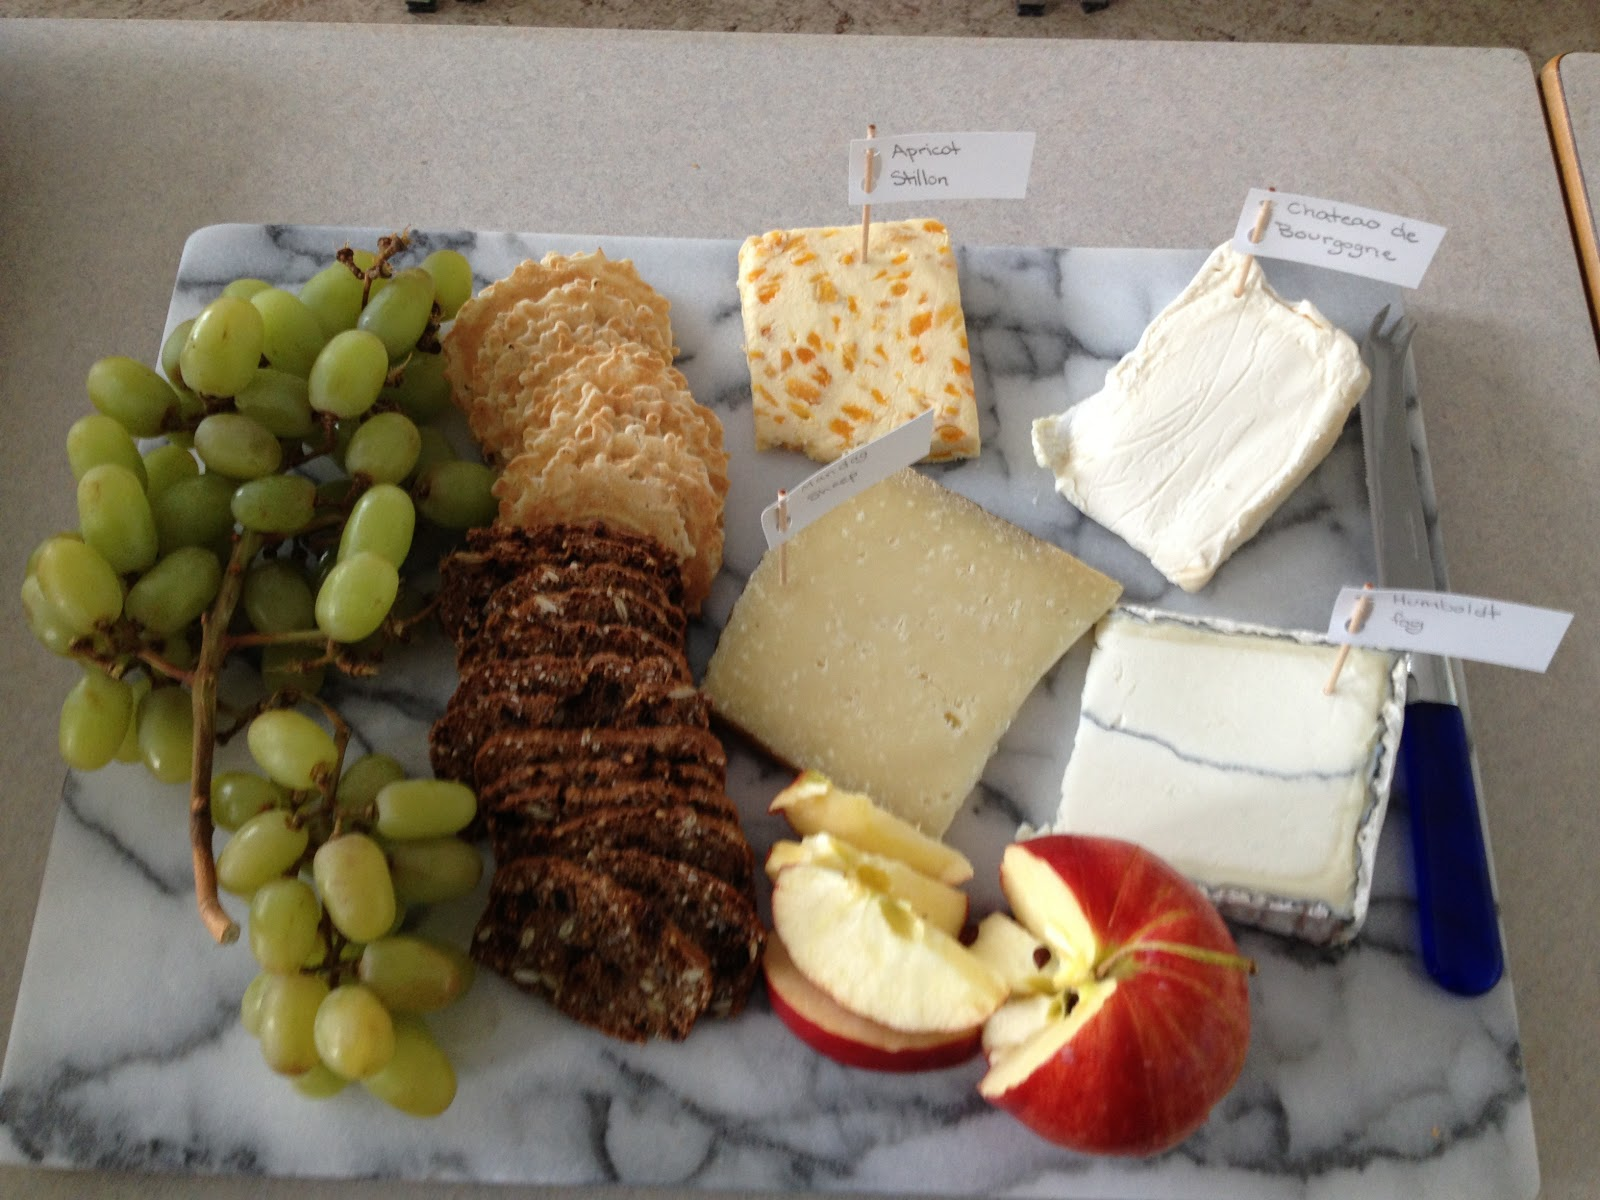 My cheese platter presentation. & Zobou0027s Musings